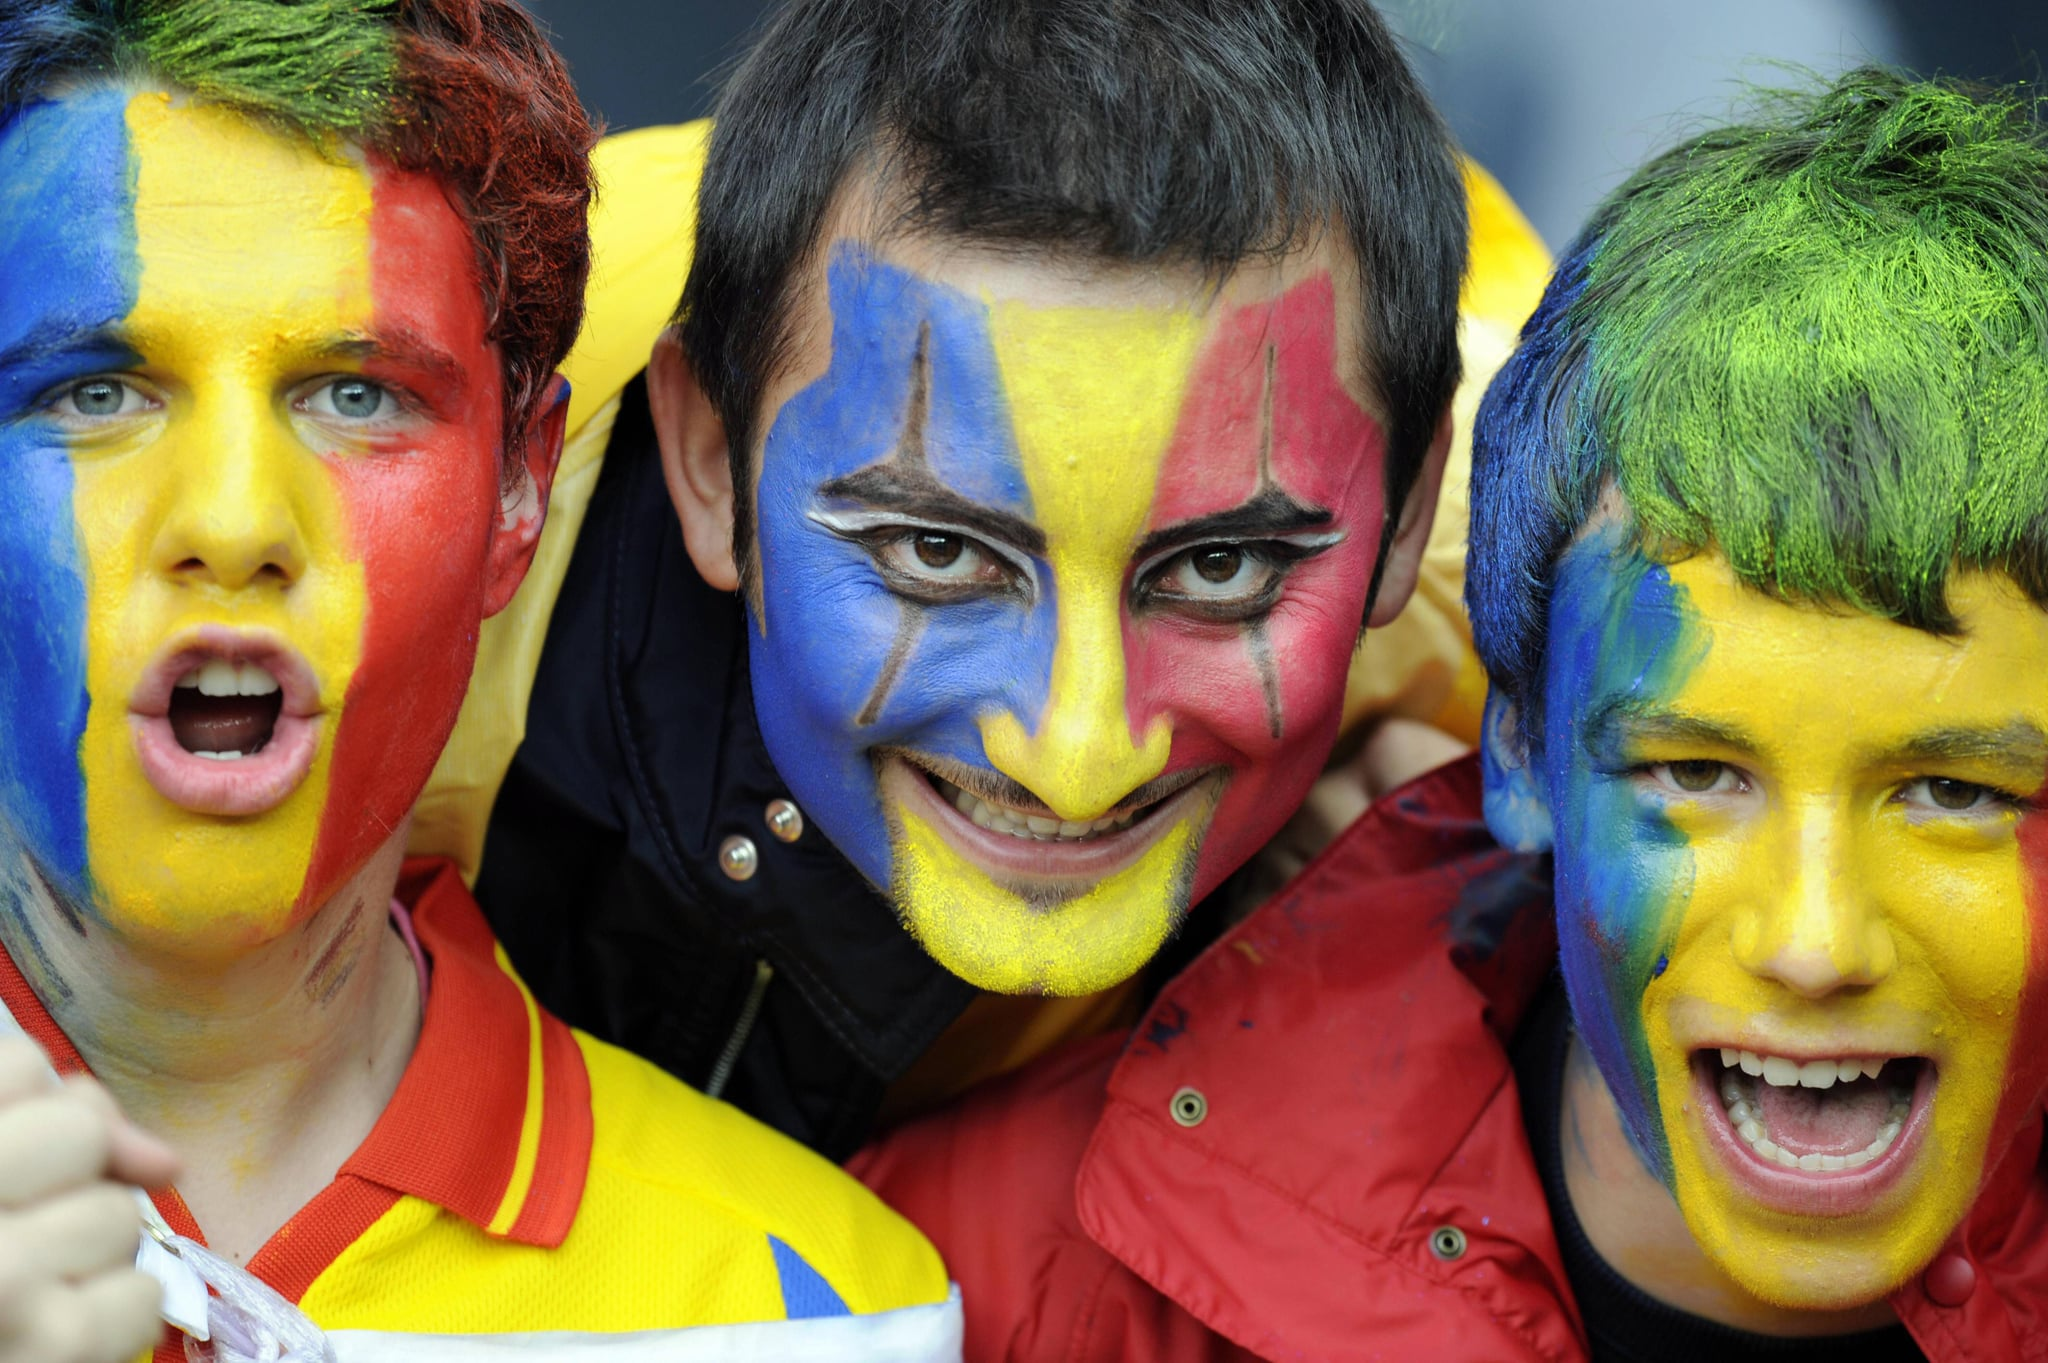 Soccer fans in Romania. The country improved from 69th place to 84th.